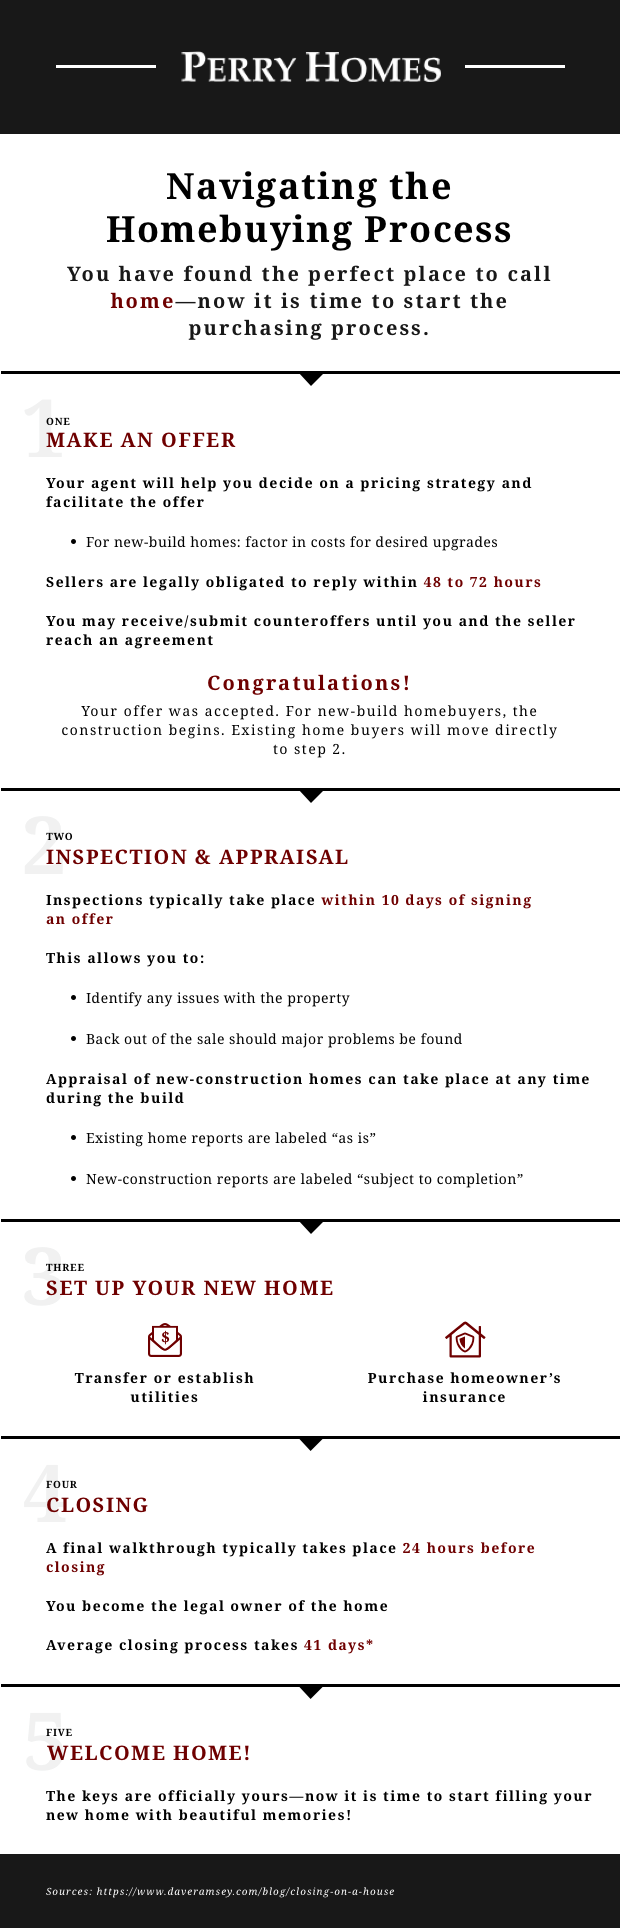 Perry Homes has your simplified guide to each step in the homebuying process: making an offer, inspection and appraisal, setup, and closing.